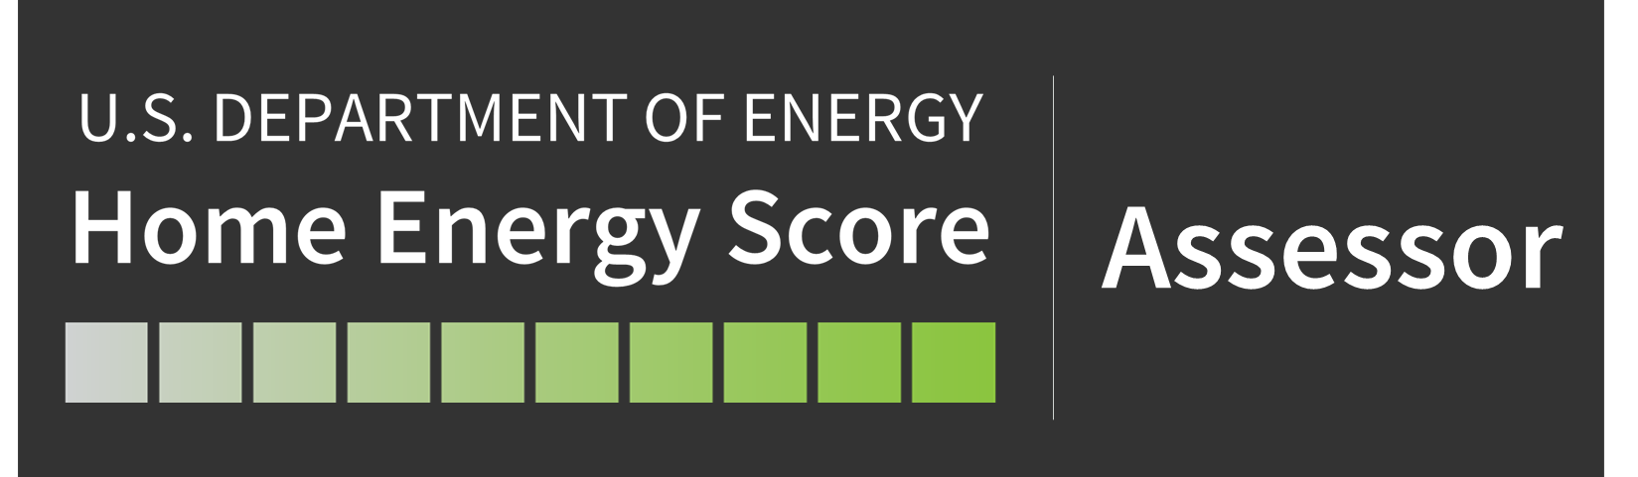 Home Energy Score_Wordblock Assessor_White Text_Gray.png